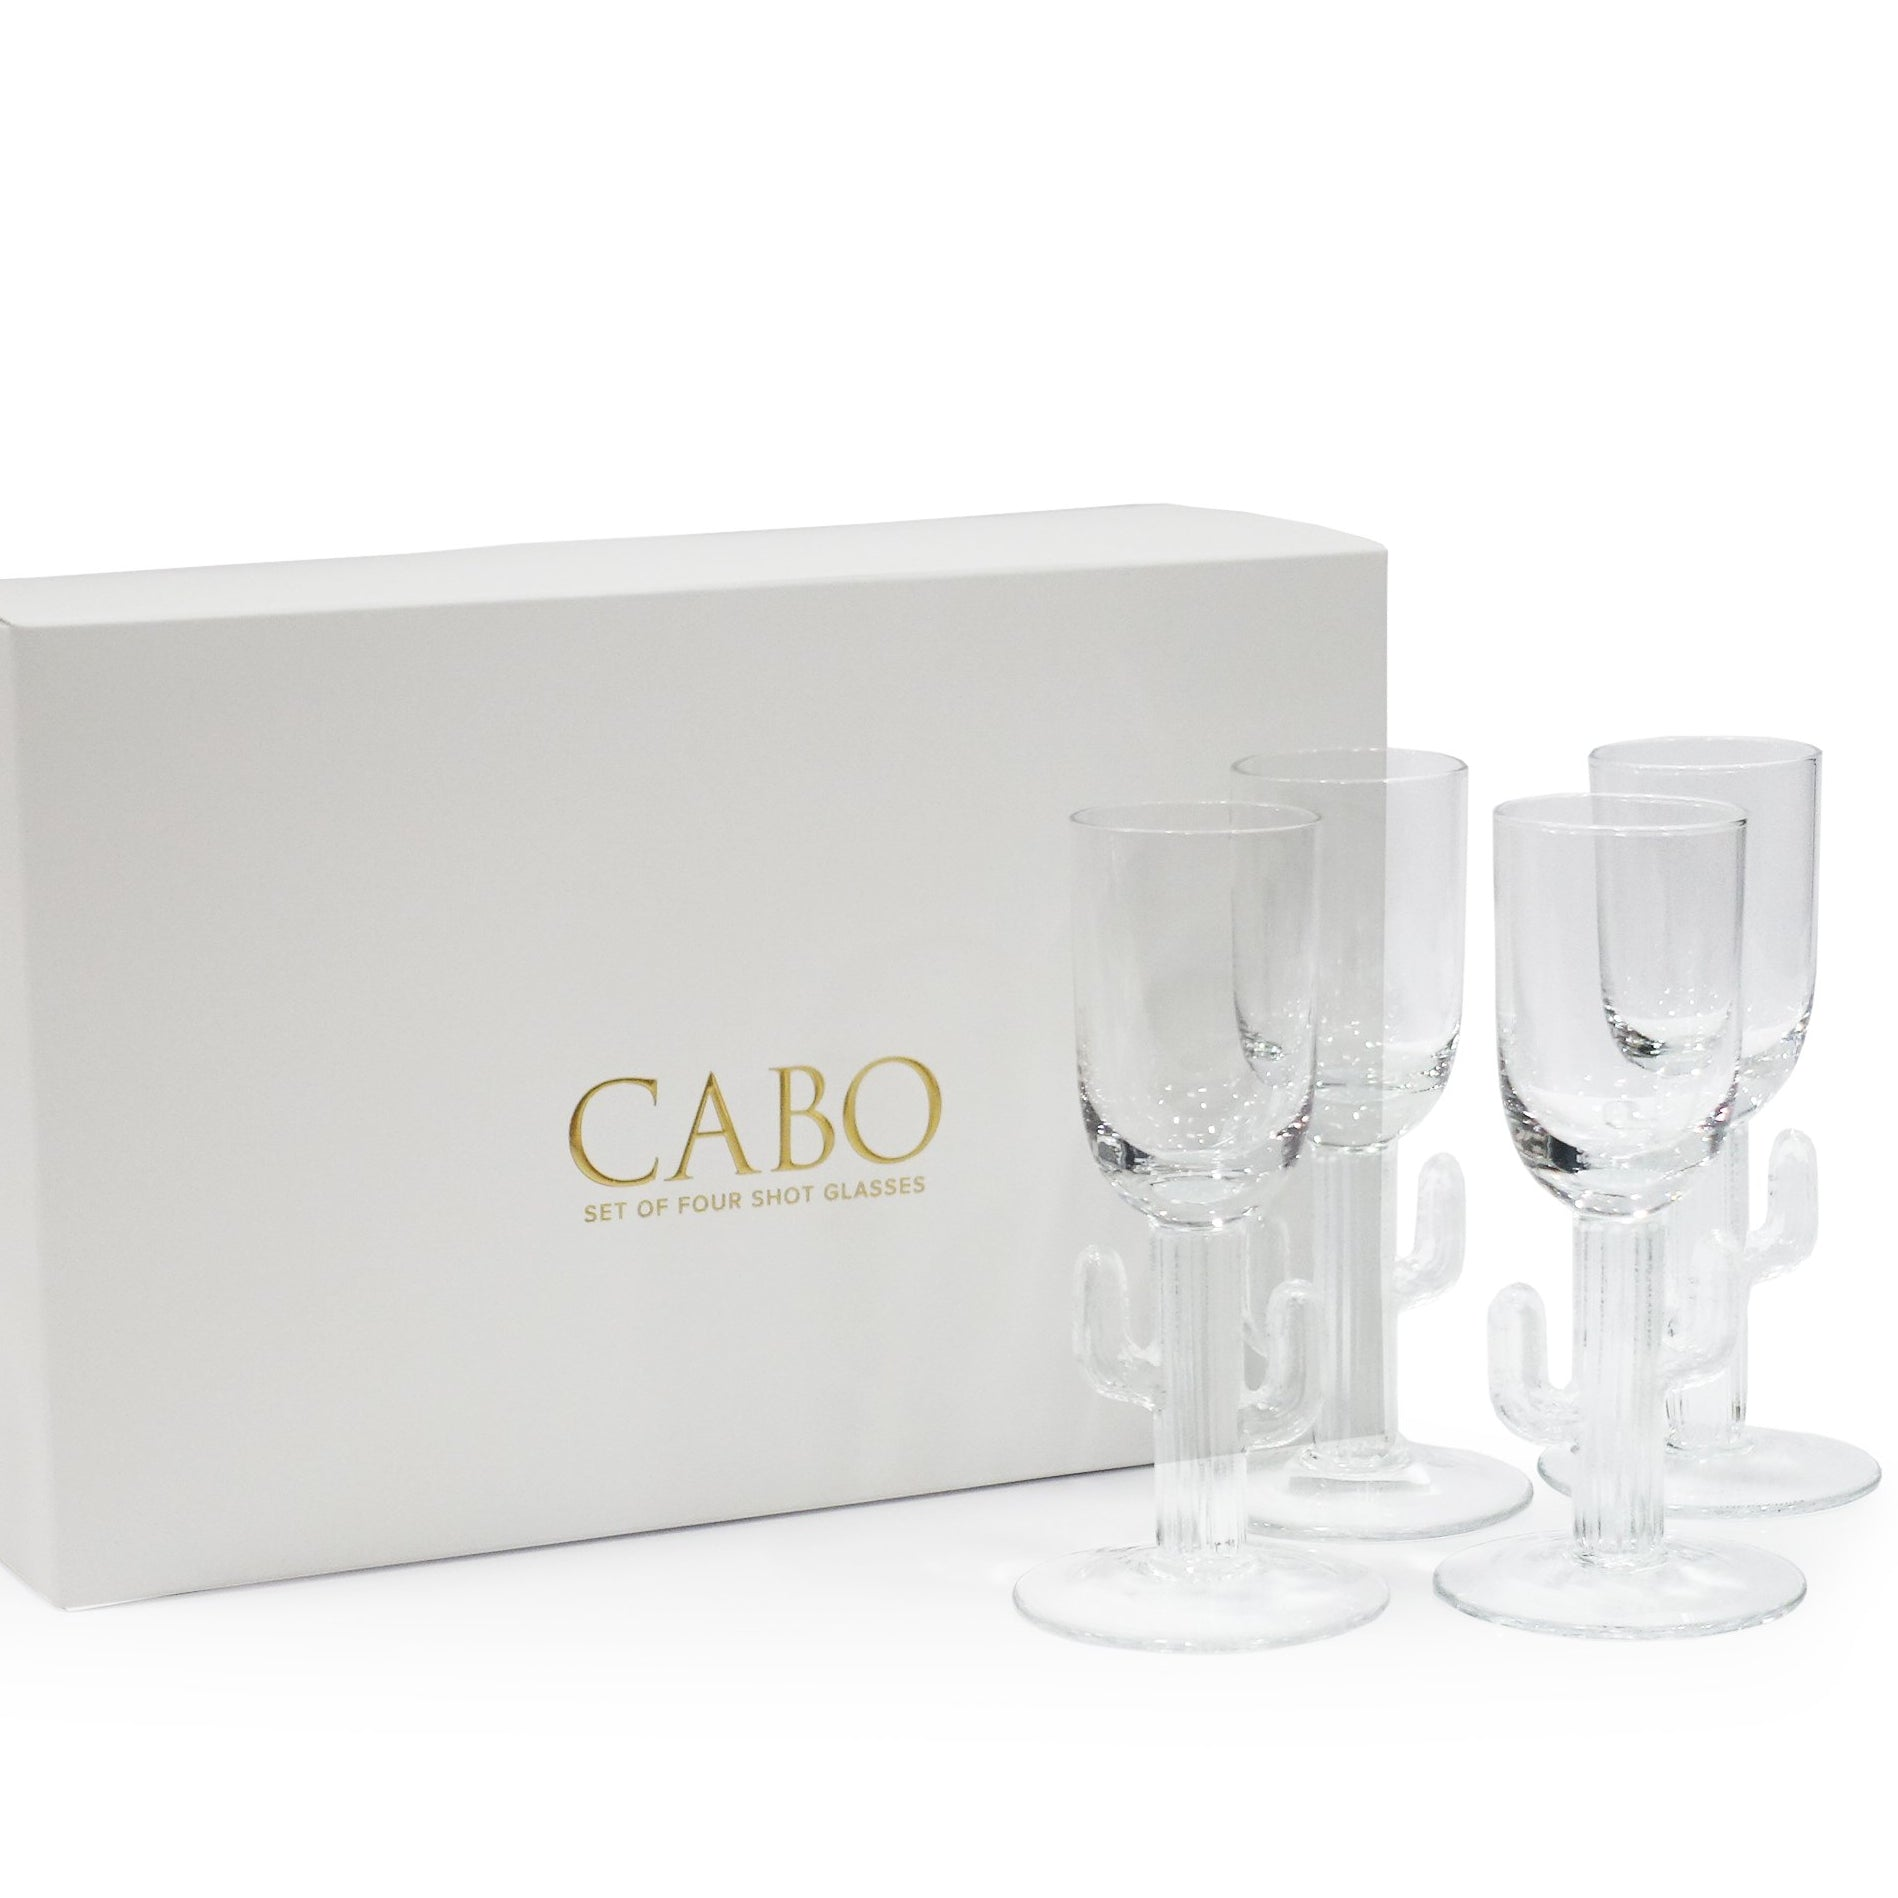 S/4 Cabo Cactus Shot Glass in Gift Box - CARLYLE AVENUE